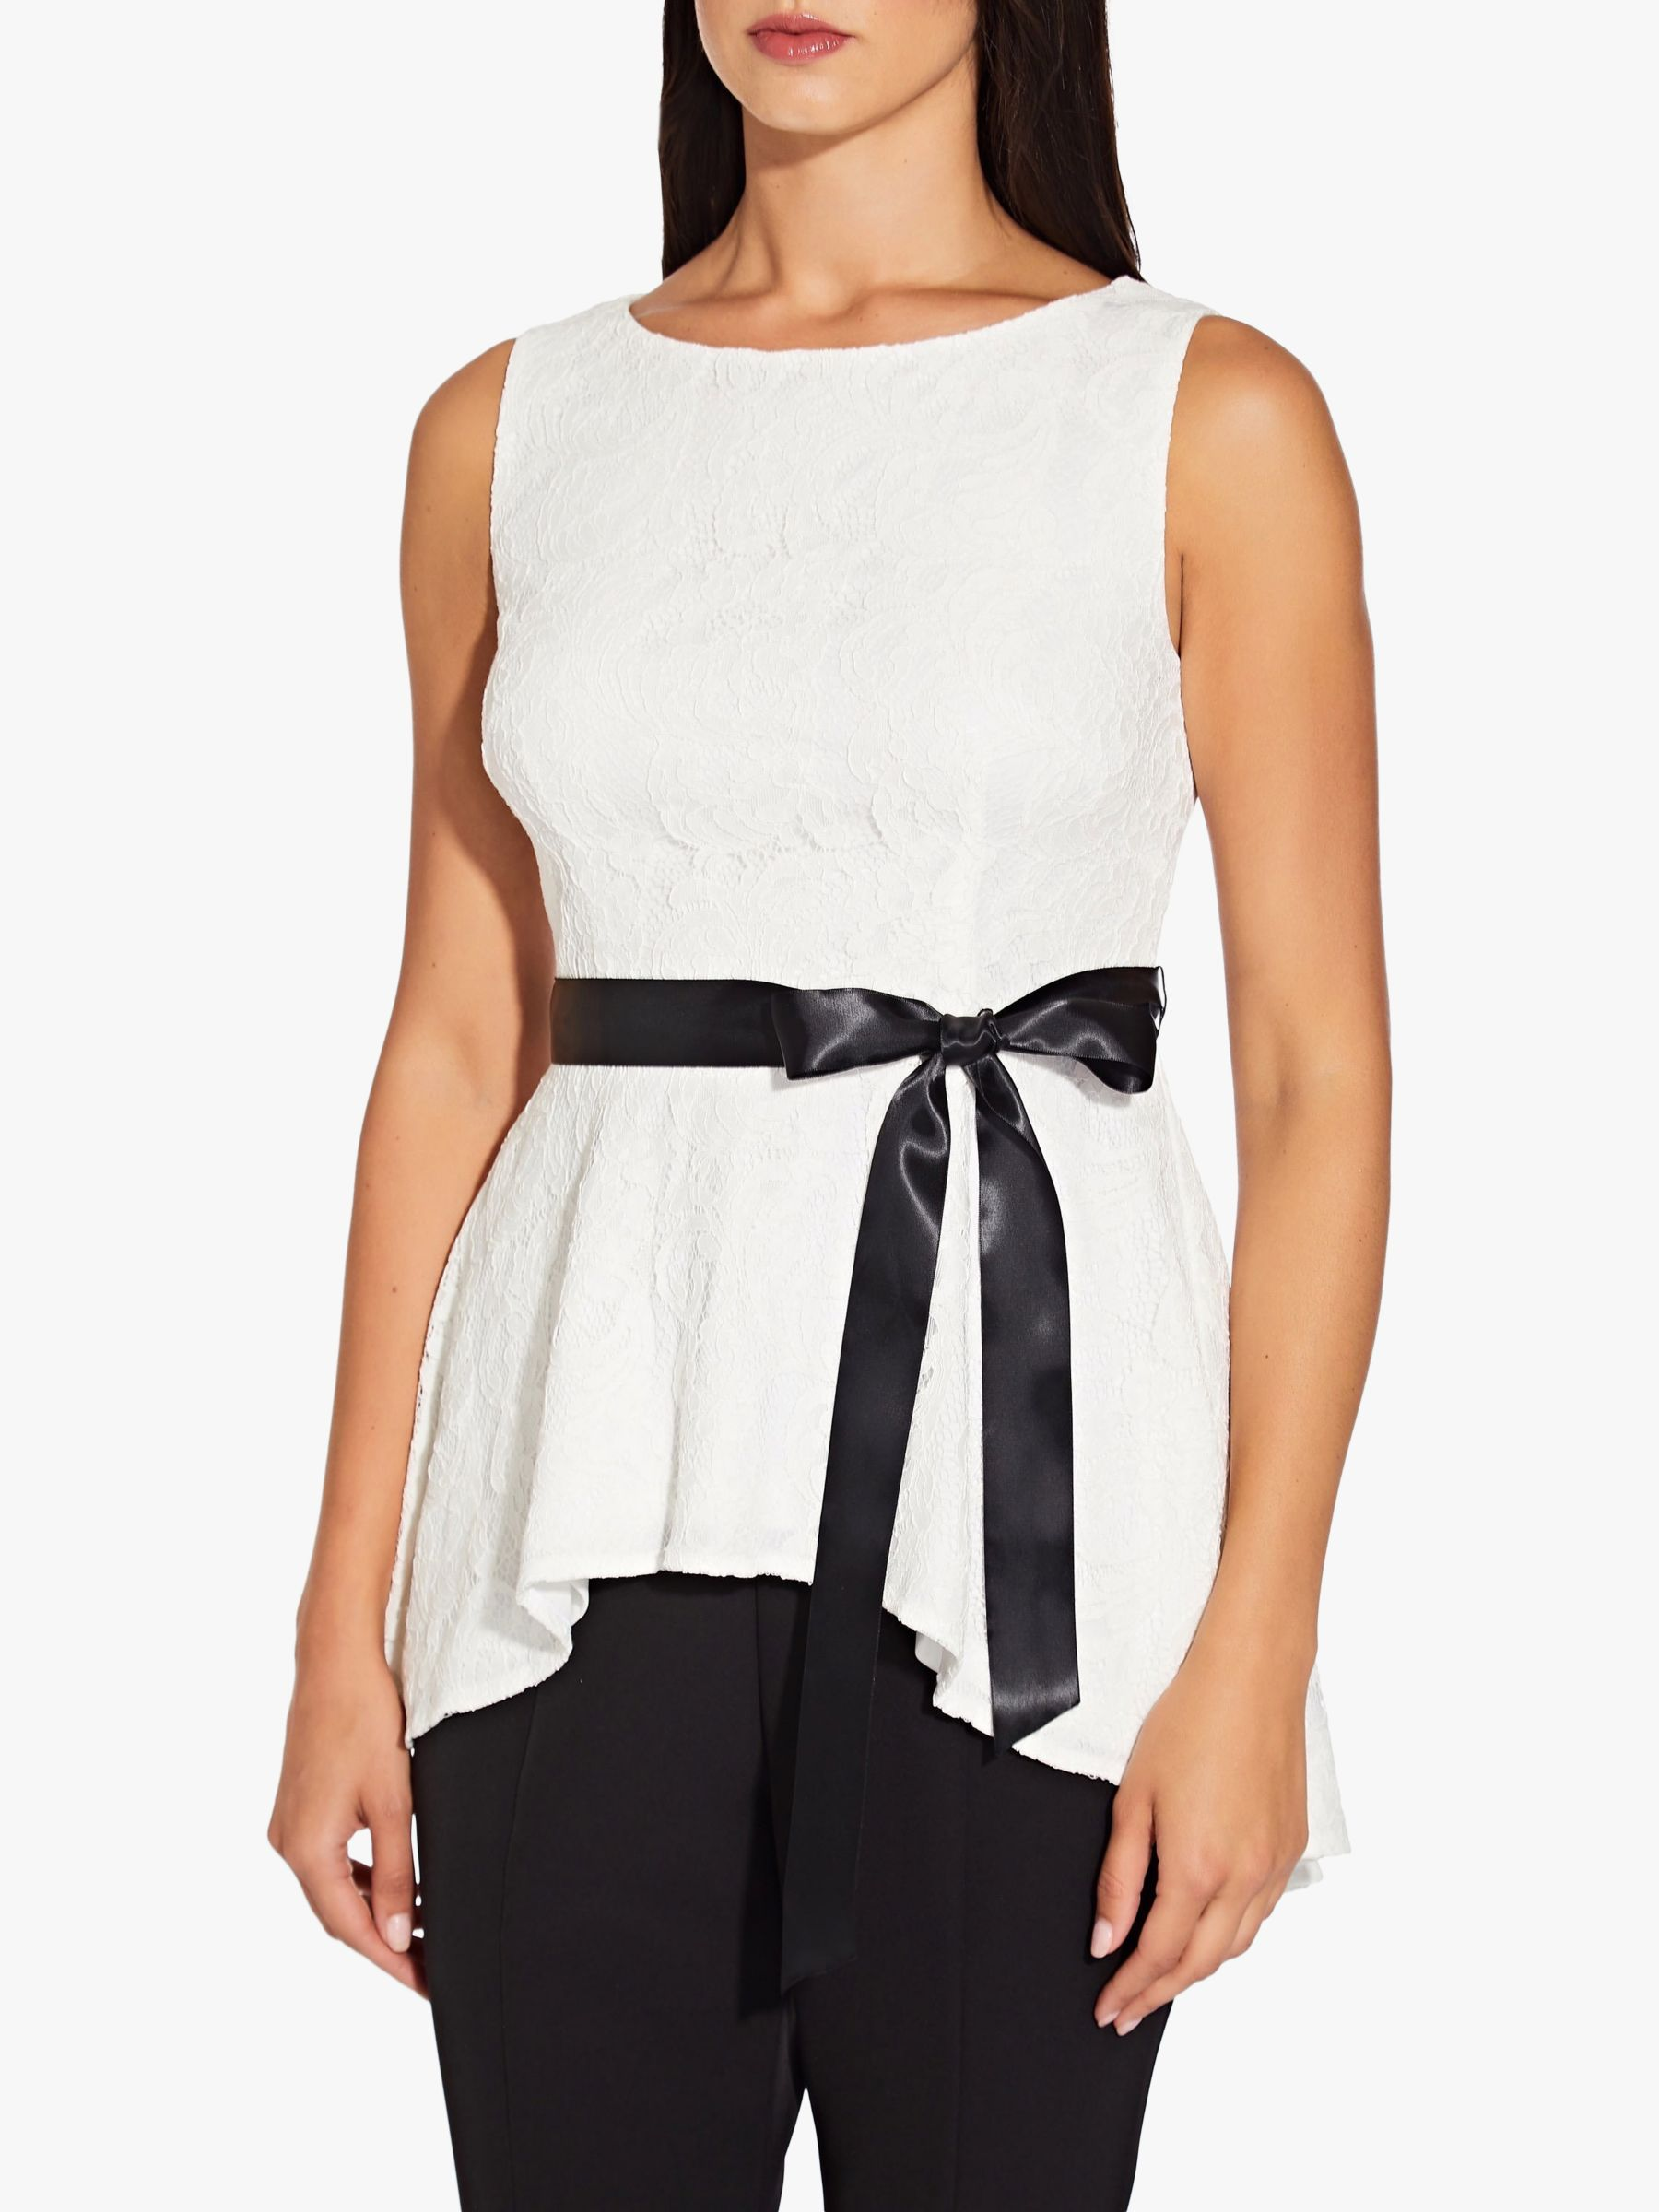 Adrianna Papell Adrianna Papell Lace Peplum Top, Ivory/Black